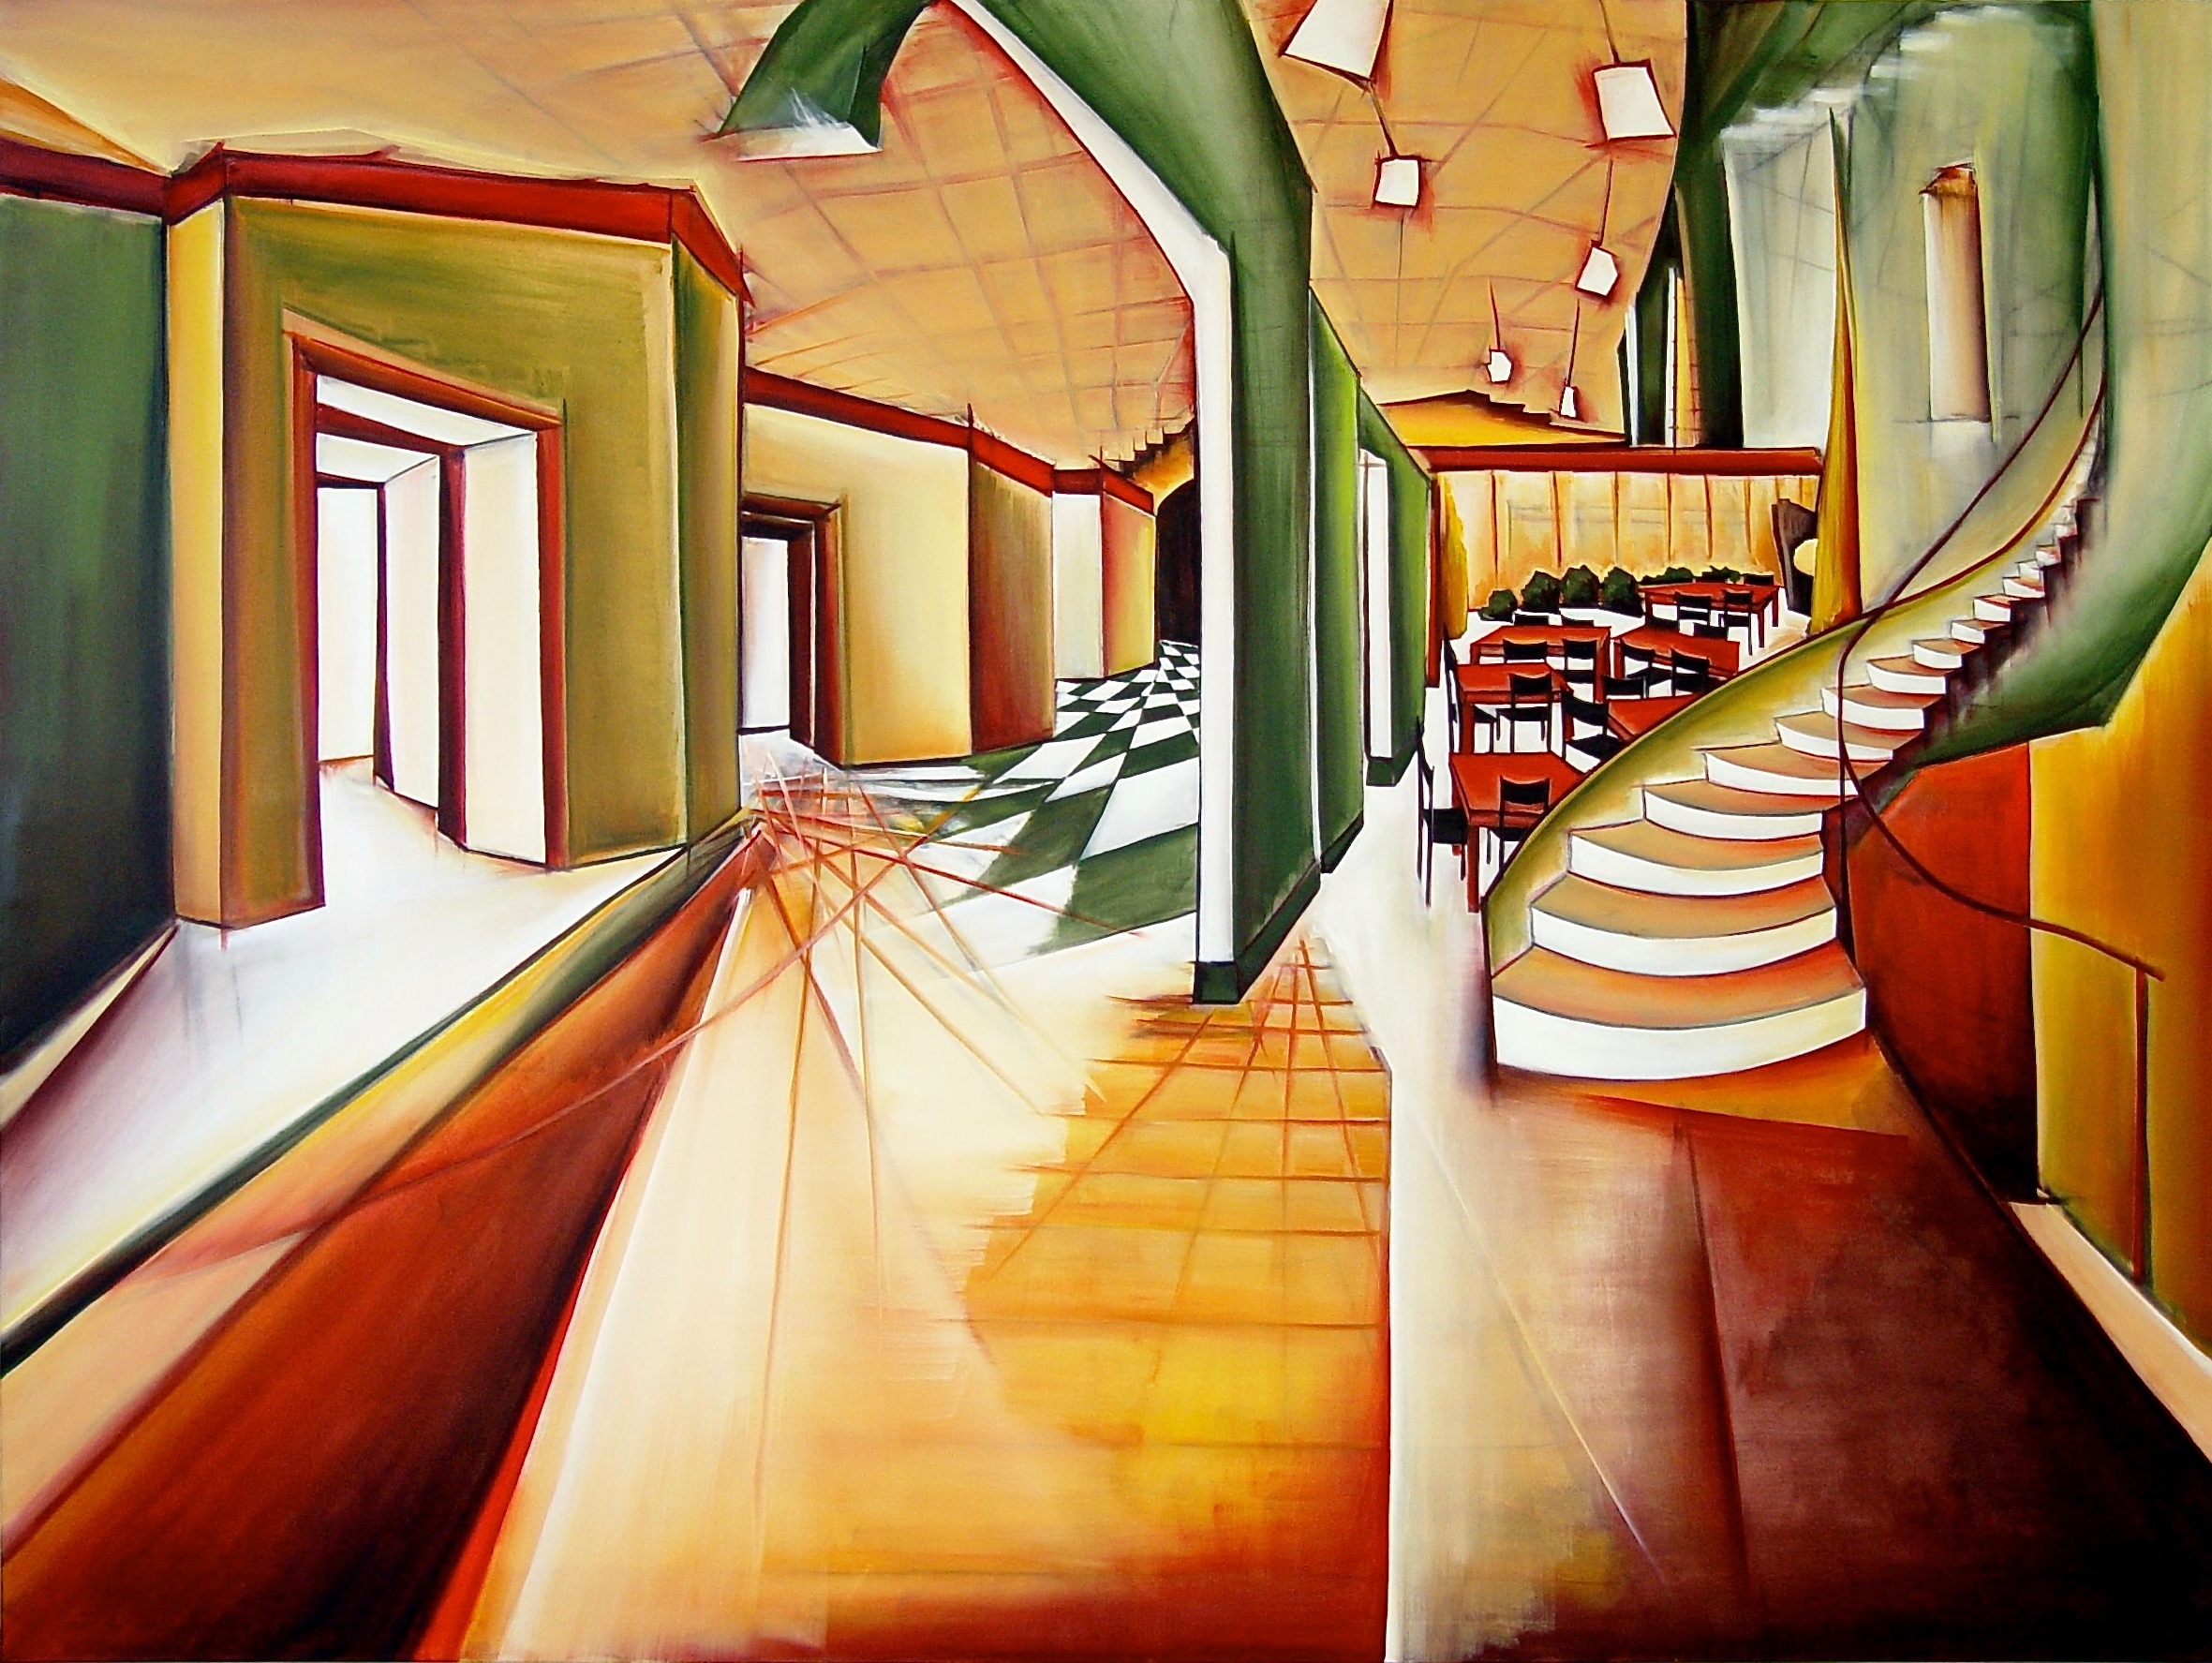 2. Theater room, Oil on canvas, 150 x 200 cm.jpg